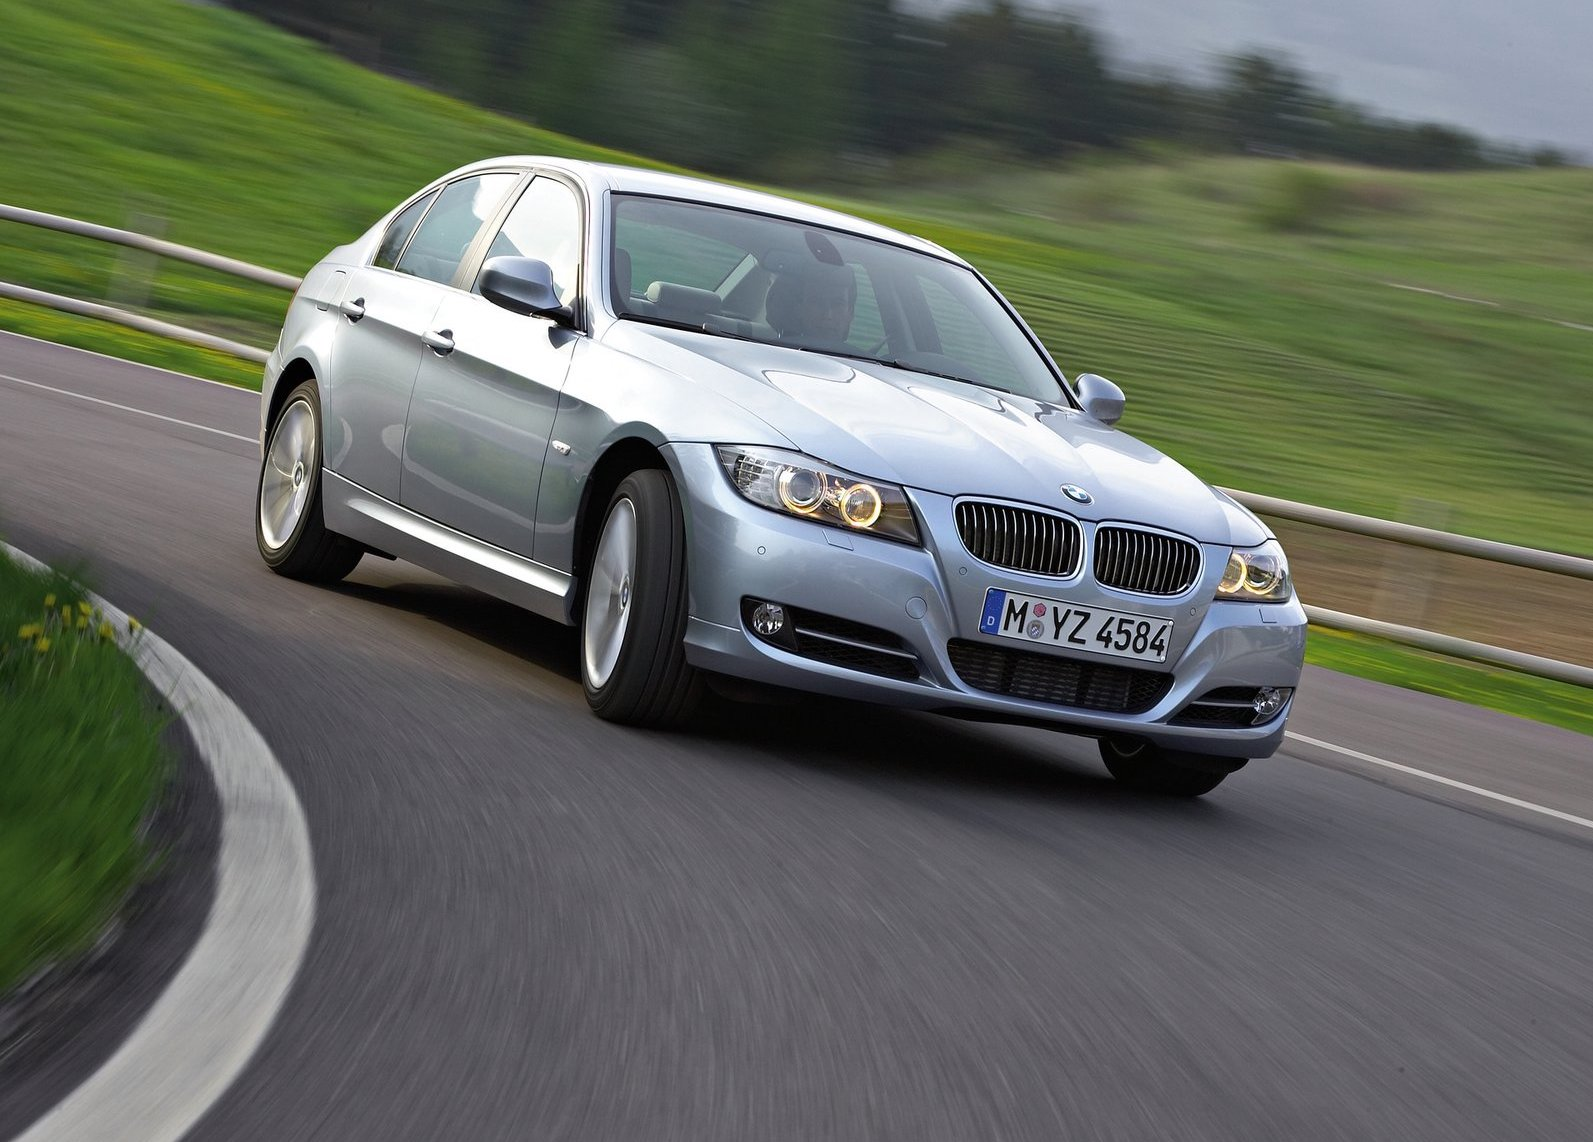 2009 BMW 3-Series on track